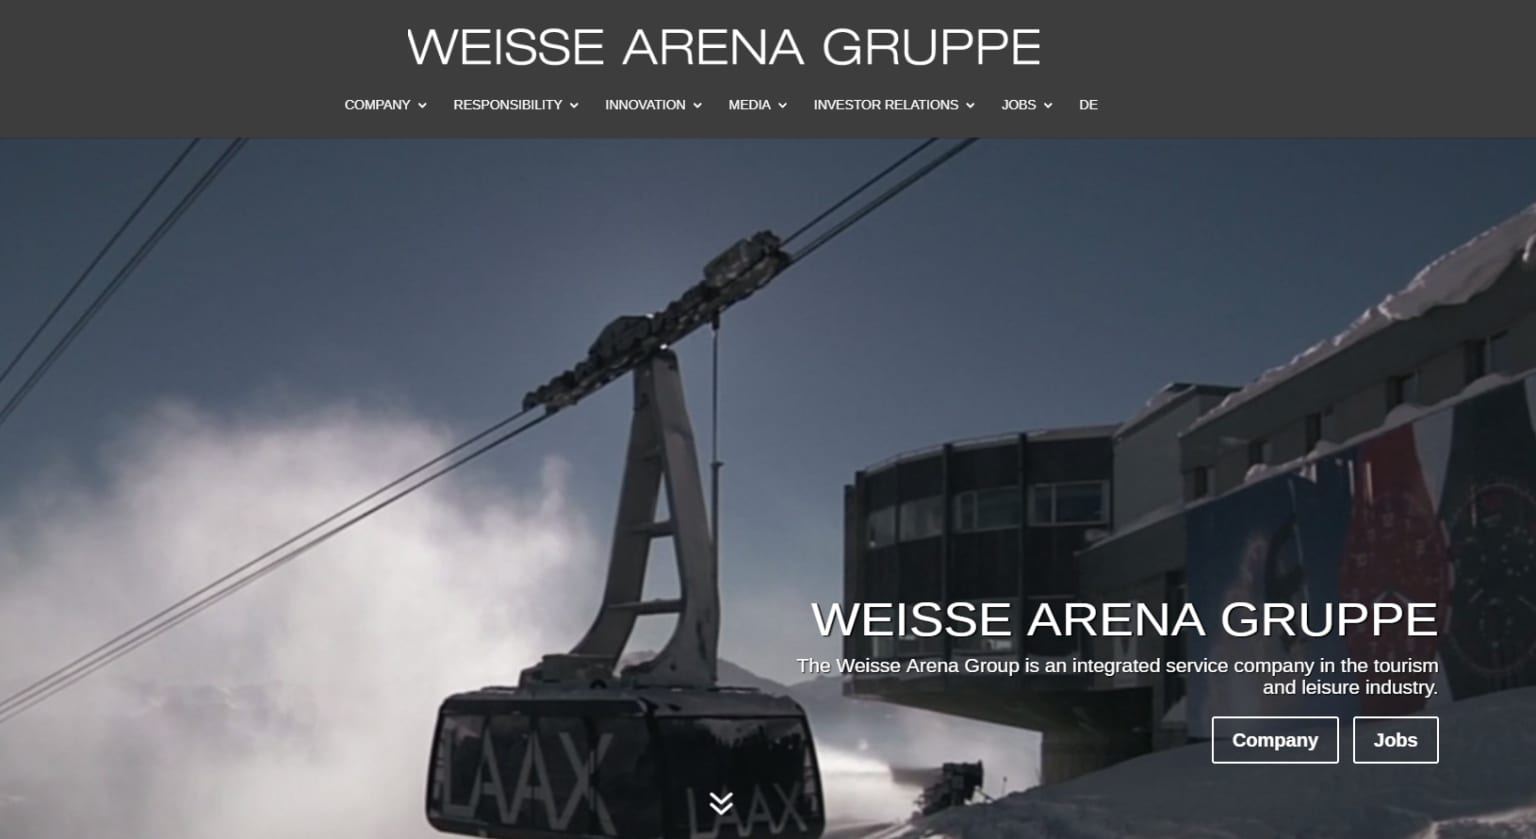 Weisse Arena Gruppe - Brand Identity Guidelines for Website